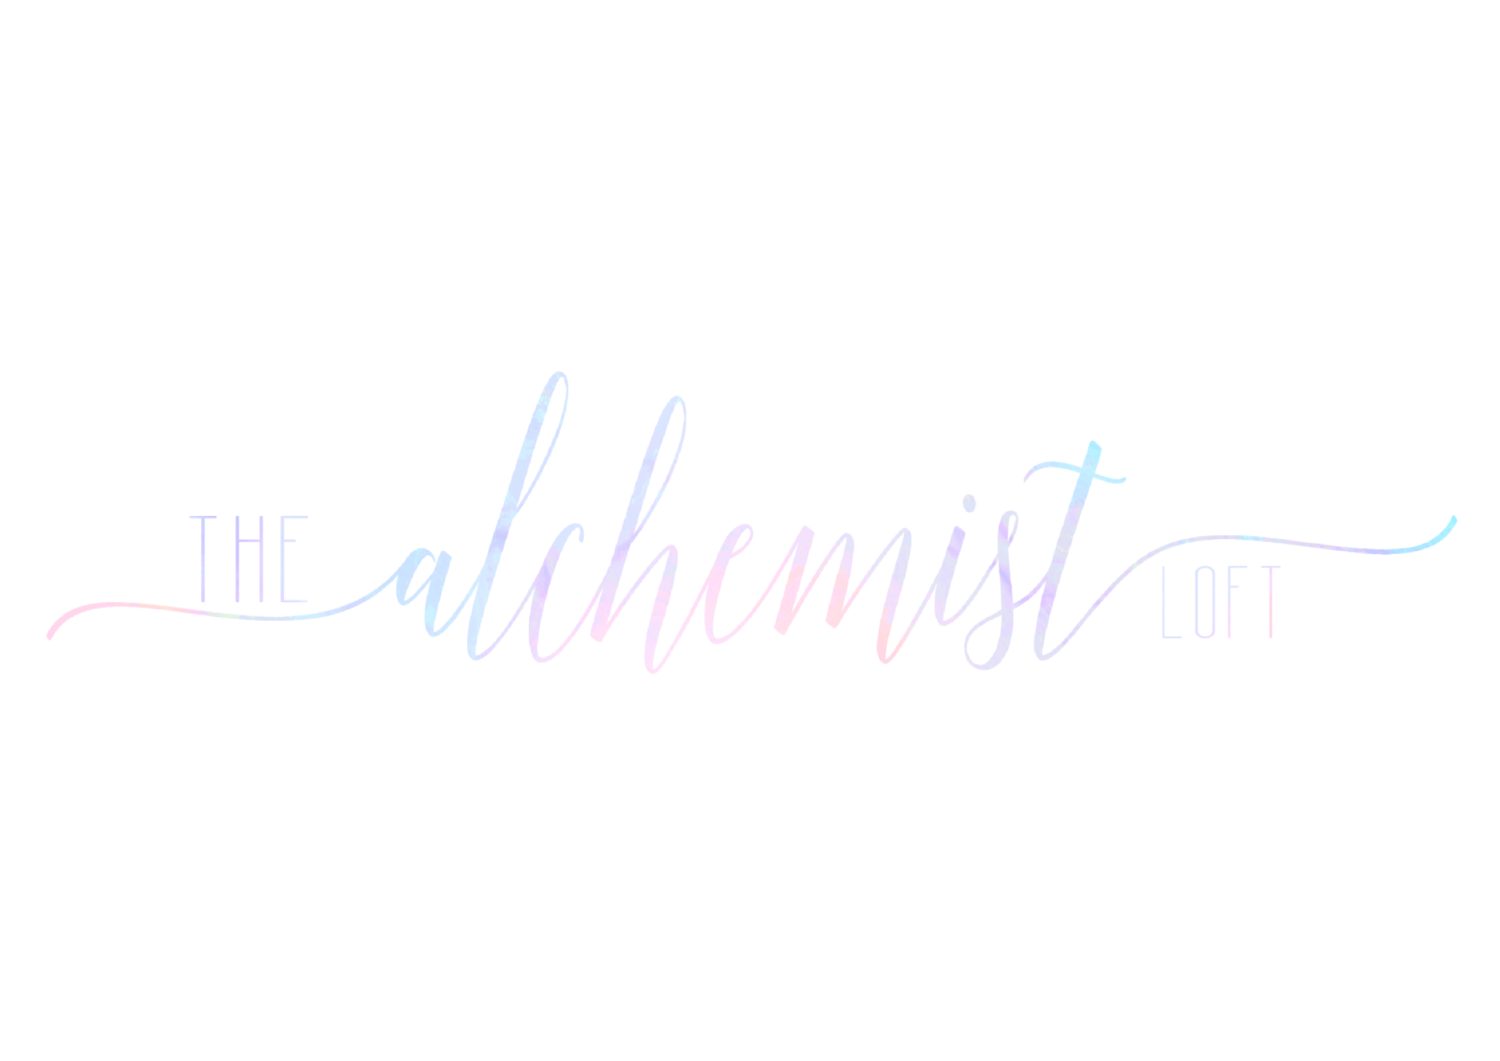 The Alchemist Loft